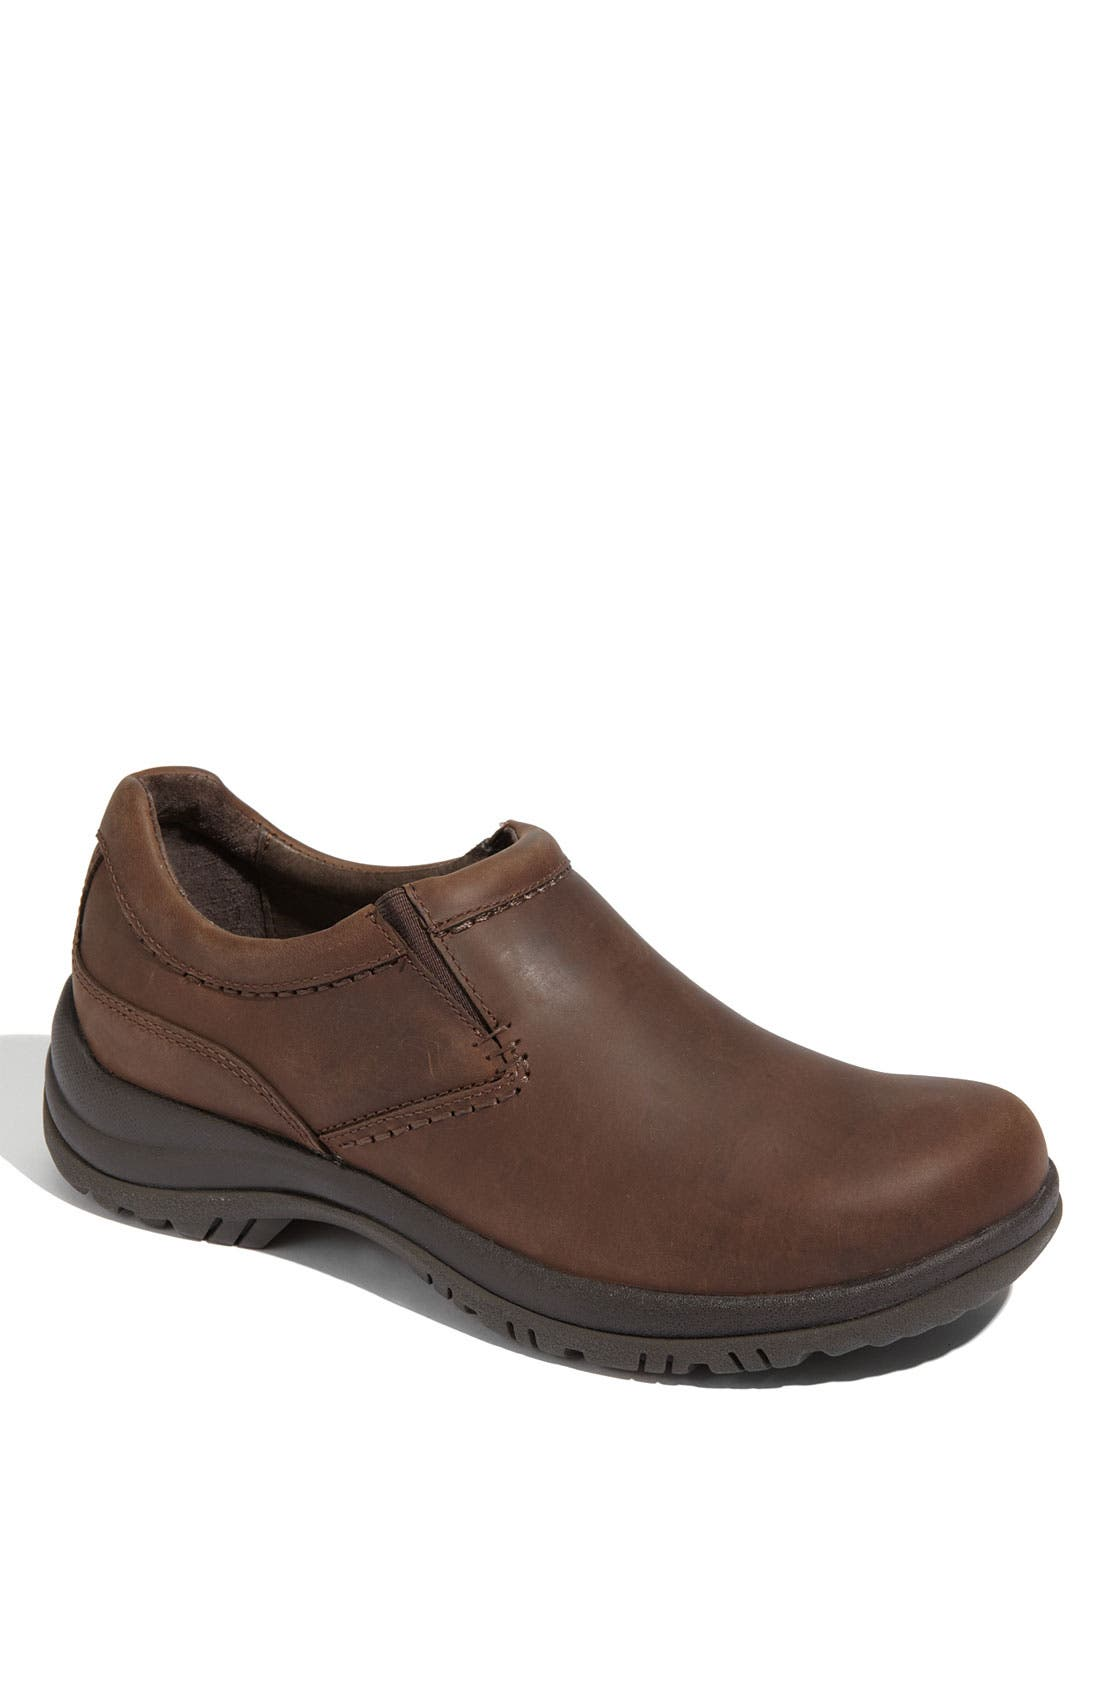 'Wynn' Slip-On,                             Main thumbnail 1, color,                             BROWN